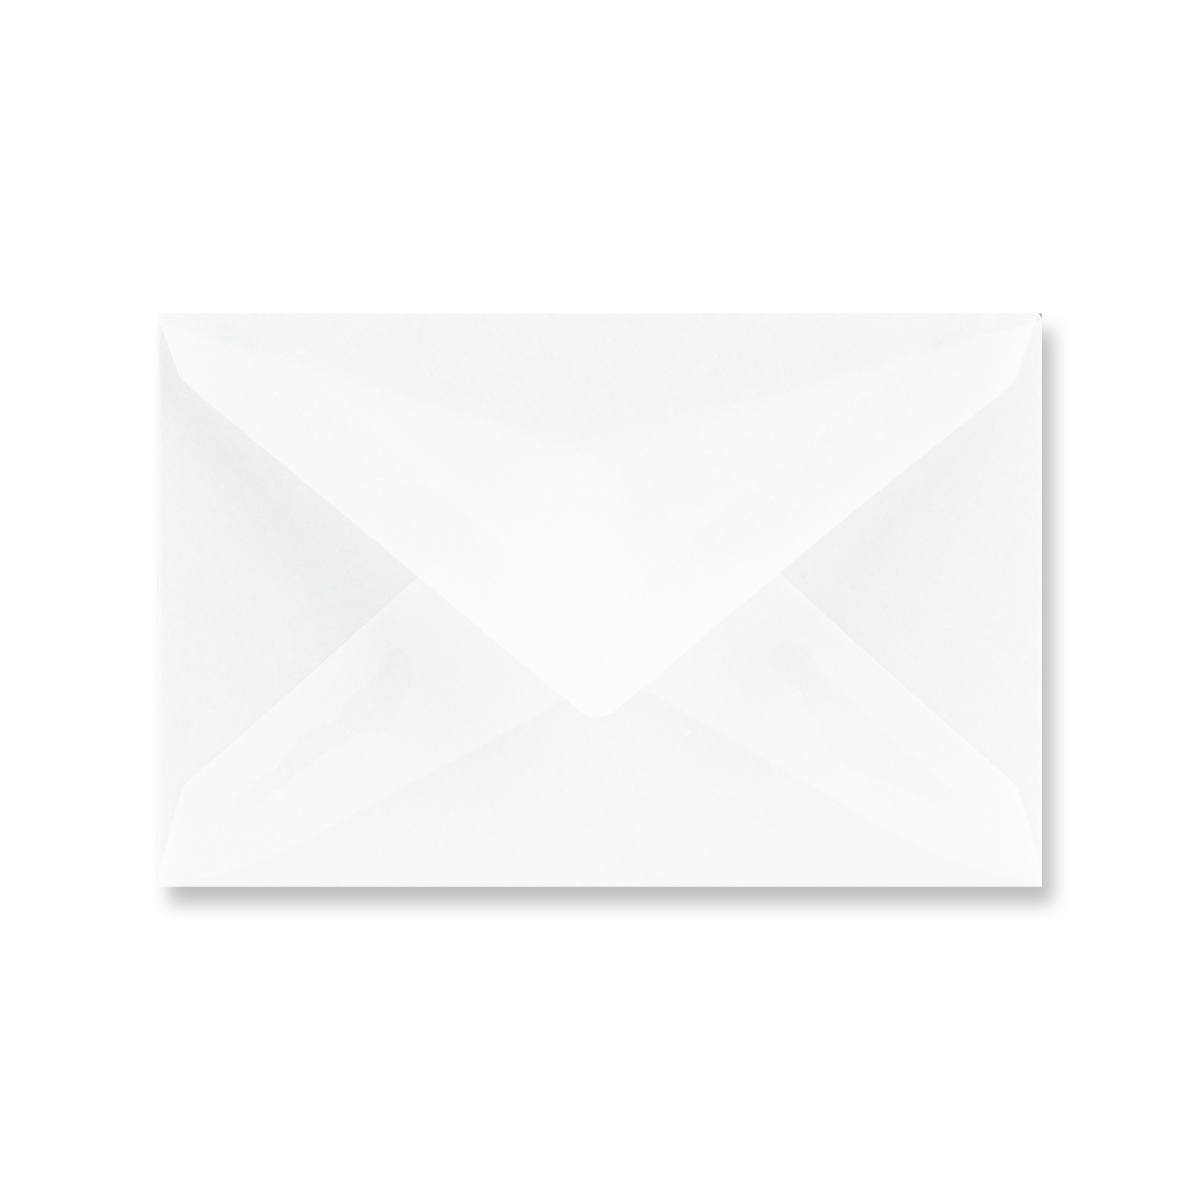 62 x 98MM CLEAR TRANSLUCENT ENVELOPES